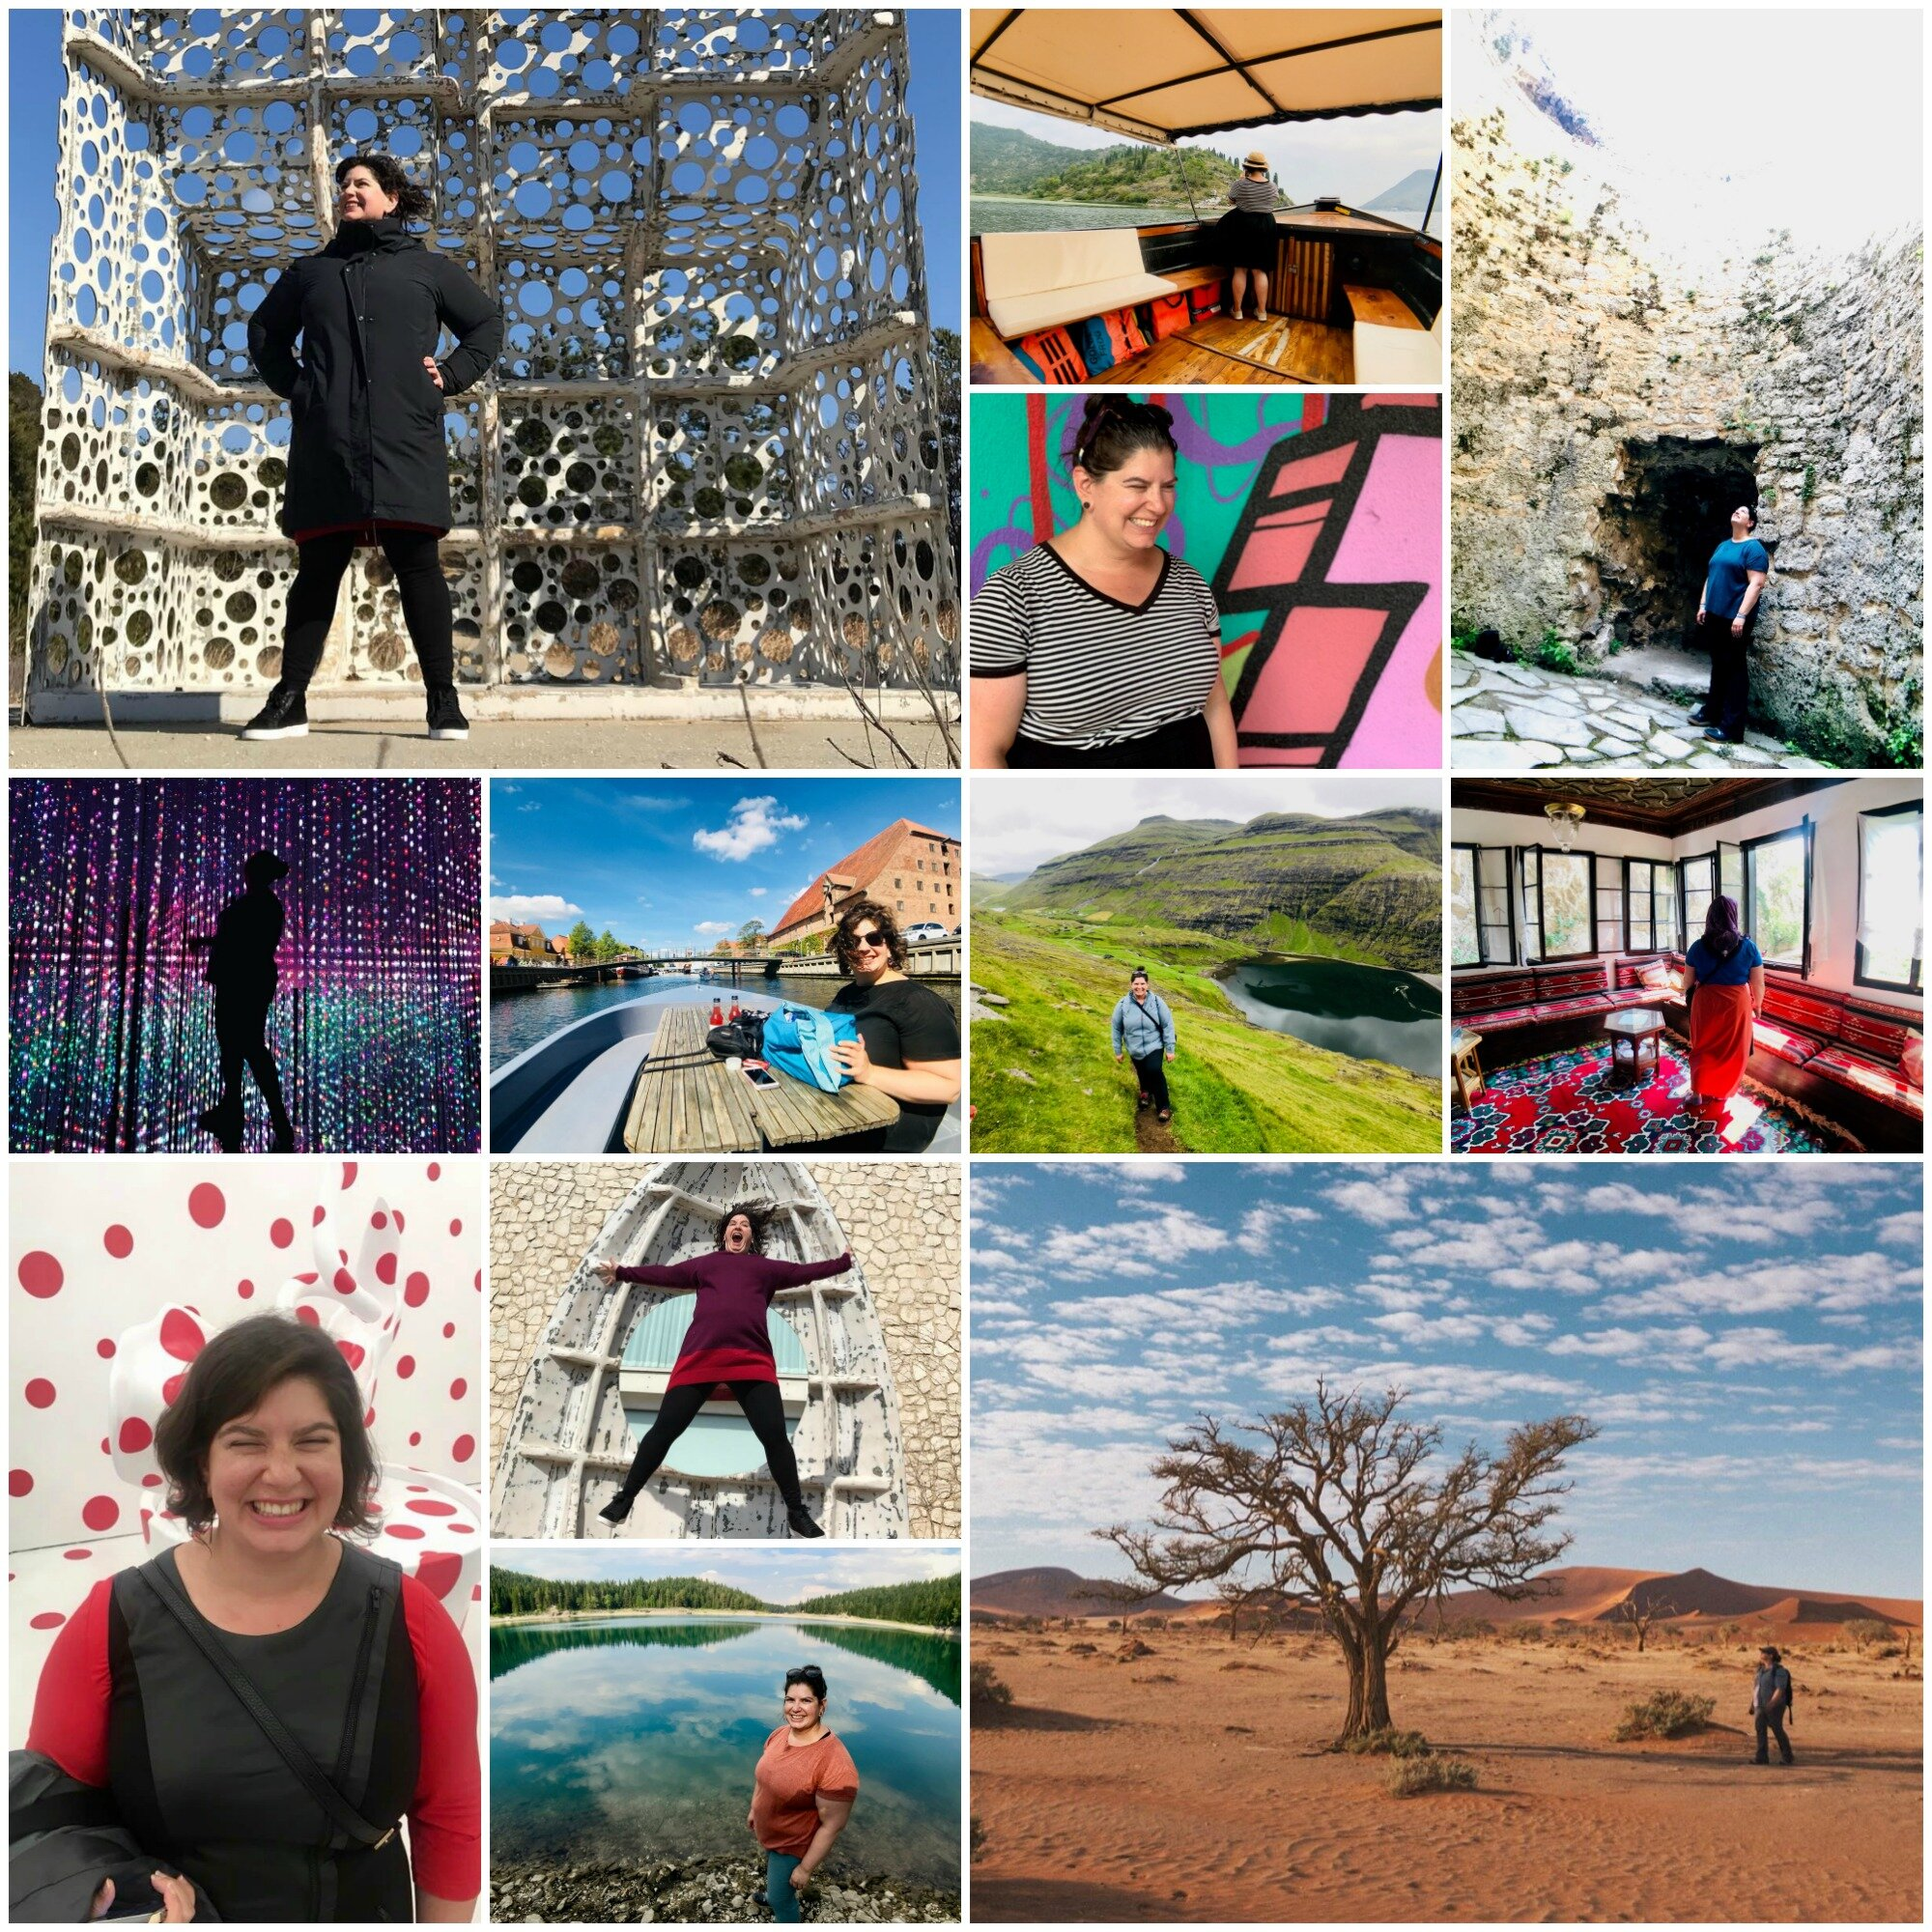 Alison brings her values of joy, curiosity, humanity, and rigor to her work and her life. She aims to learn about culture - by exploring nature, history, politics, community, art, and food -- wherever she goes. Here are some photos of her doing just that Top row, left to right: Naoshima, Japan; Lake Skadar, Montenegro; Mostar, Bosnia-Herzegovina; Travnik, Bosnia-Herzegovina. Middle row, left to right: Tokyo, Japan; Copenhagen, Denmark; Faroe Islands; Blagaj, Bosnia-Herzegovina. Bottom row, left to right: New York, NY; Naoshima, Japan (top); Žabljak, Bosnia-Herzegovina; Sesriem, Namibia.    Thank you to    Alice Chen   ,    Nancy La Lanne   , and    Luan Torreira    for taking many of these photos.